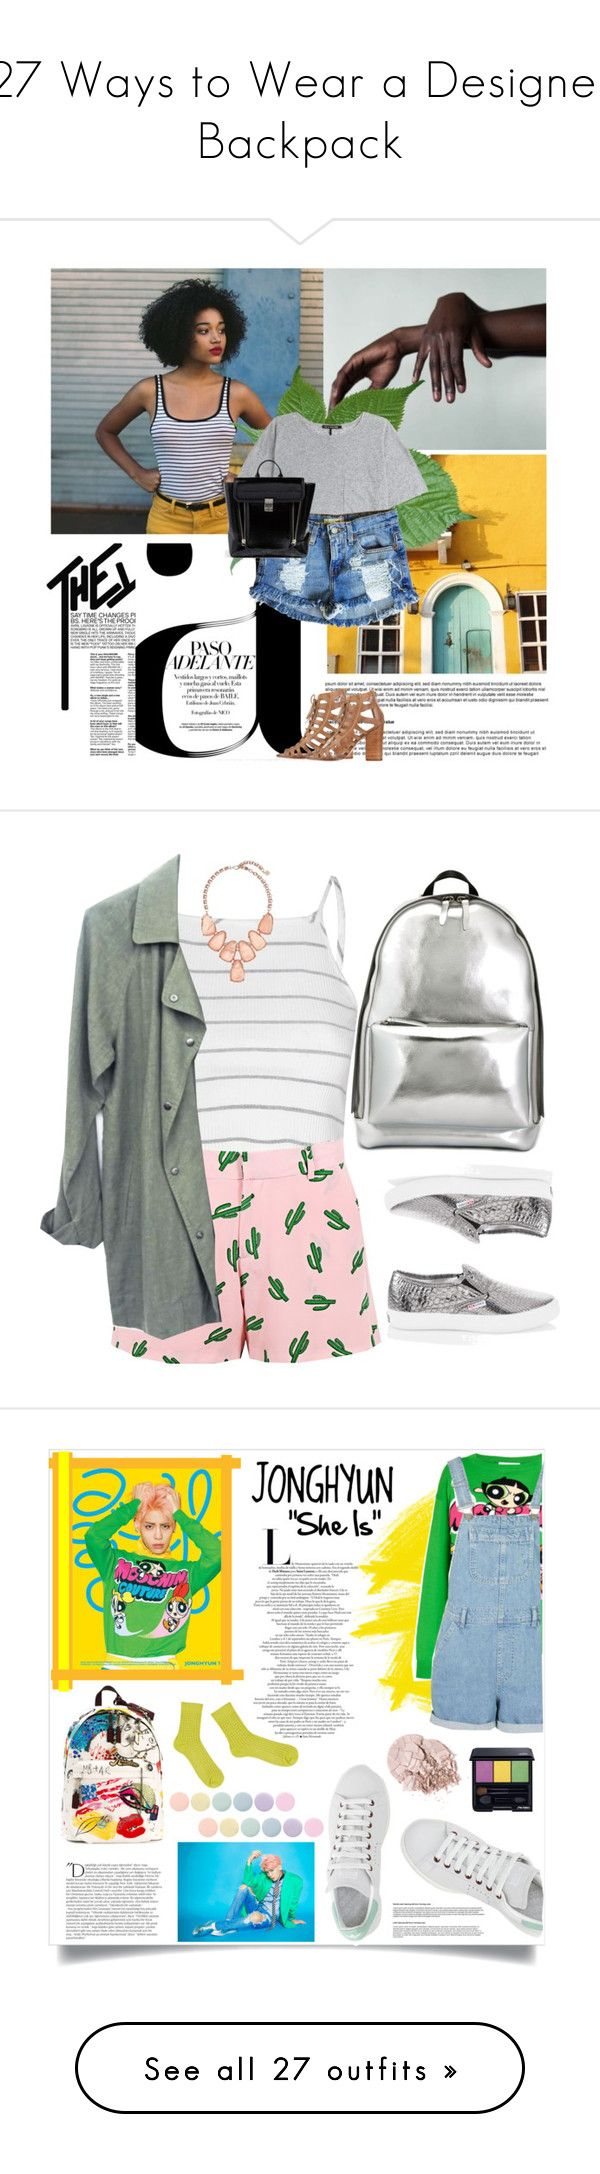 """""""27 Ways to Wear a Designer Backpack"""" by polyvore-editorial ❤ liked on Polyvore featuring waystowear, designerbackpack, Nico, rag & bone, Levi's, Rebecca Minkoff, 3.1 Phillip Lim, Glamorous, American Retro and White House Black Market"""